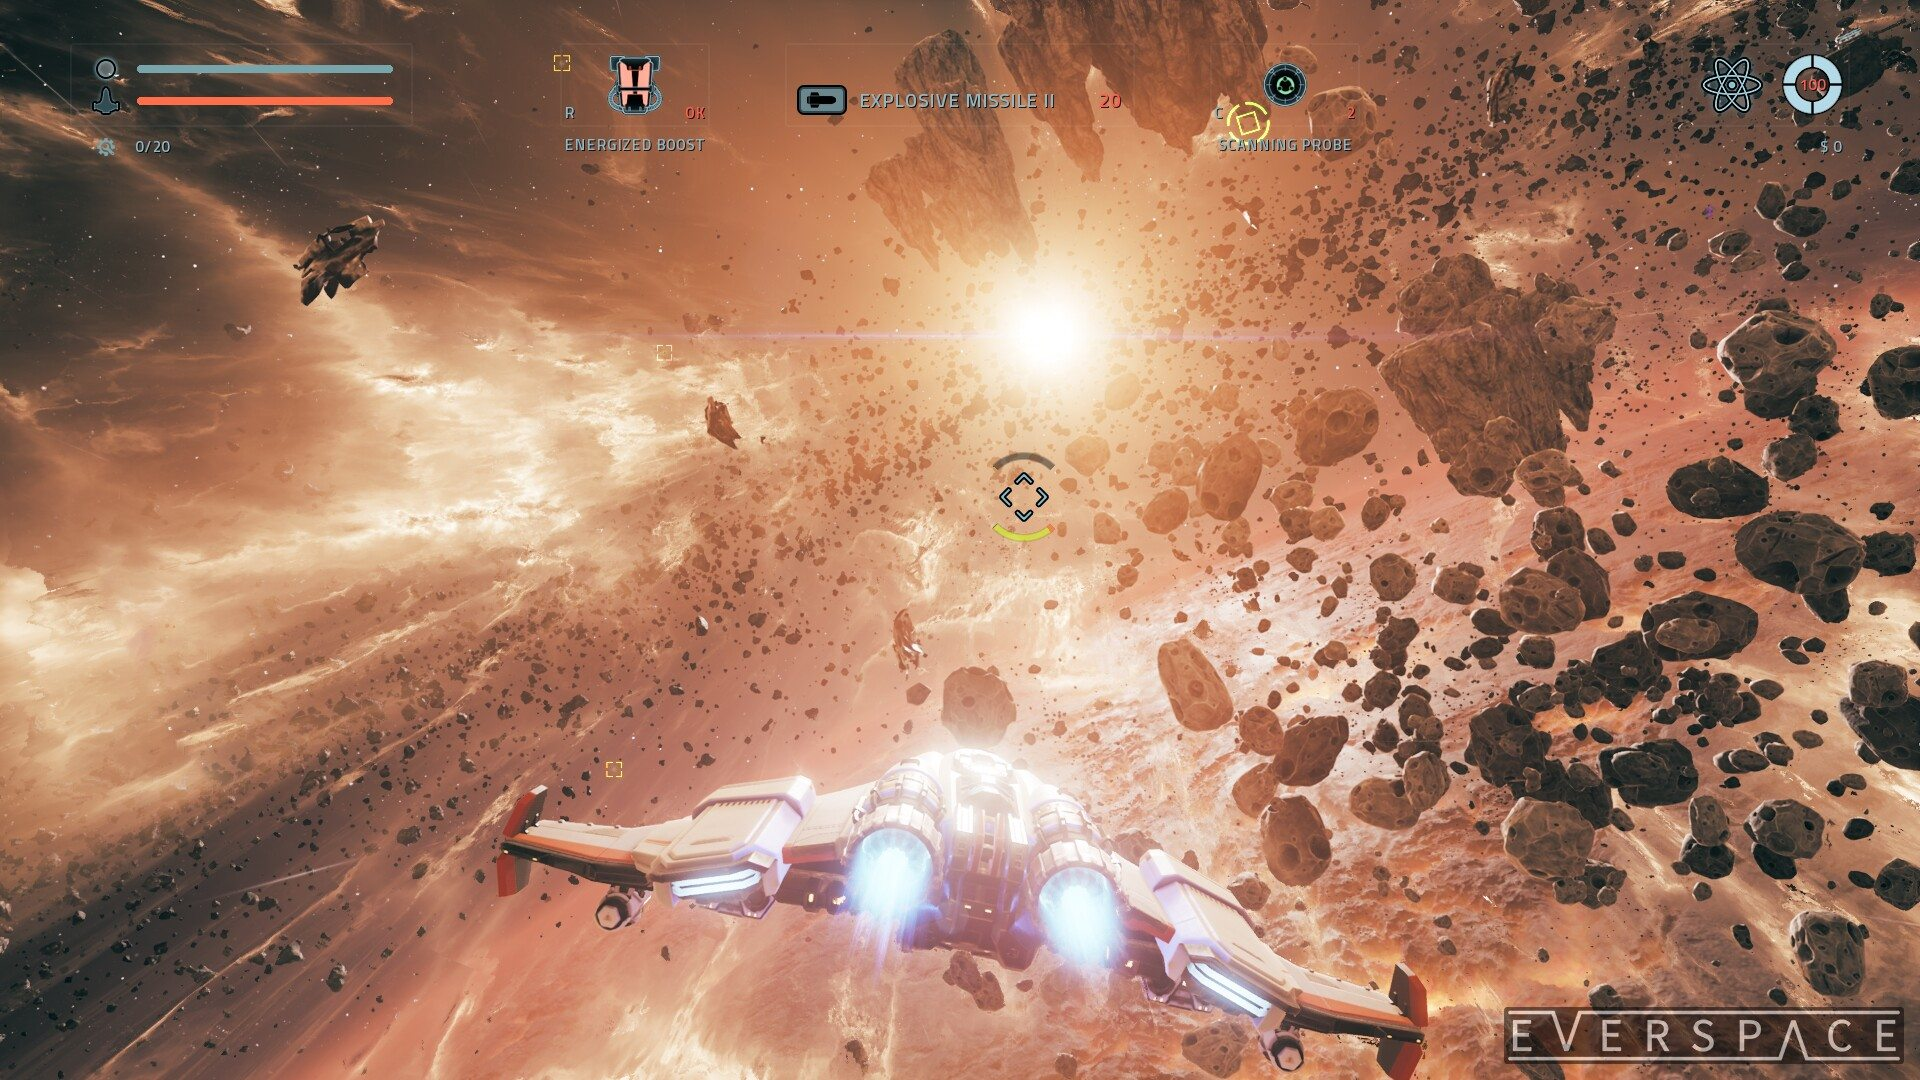 EVERSPACE Releases 2 Massive Updates for Xbox One, Steam and Windows 10 Store